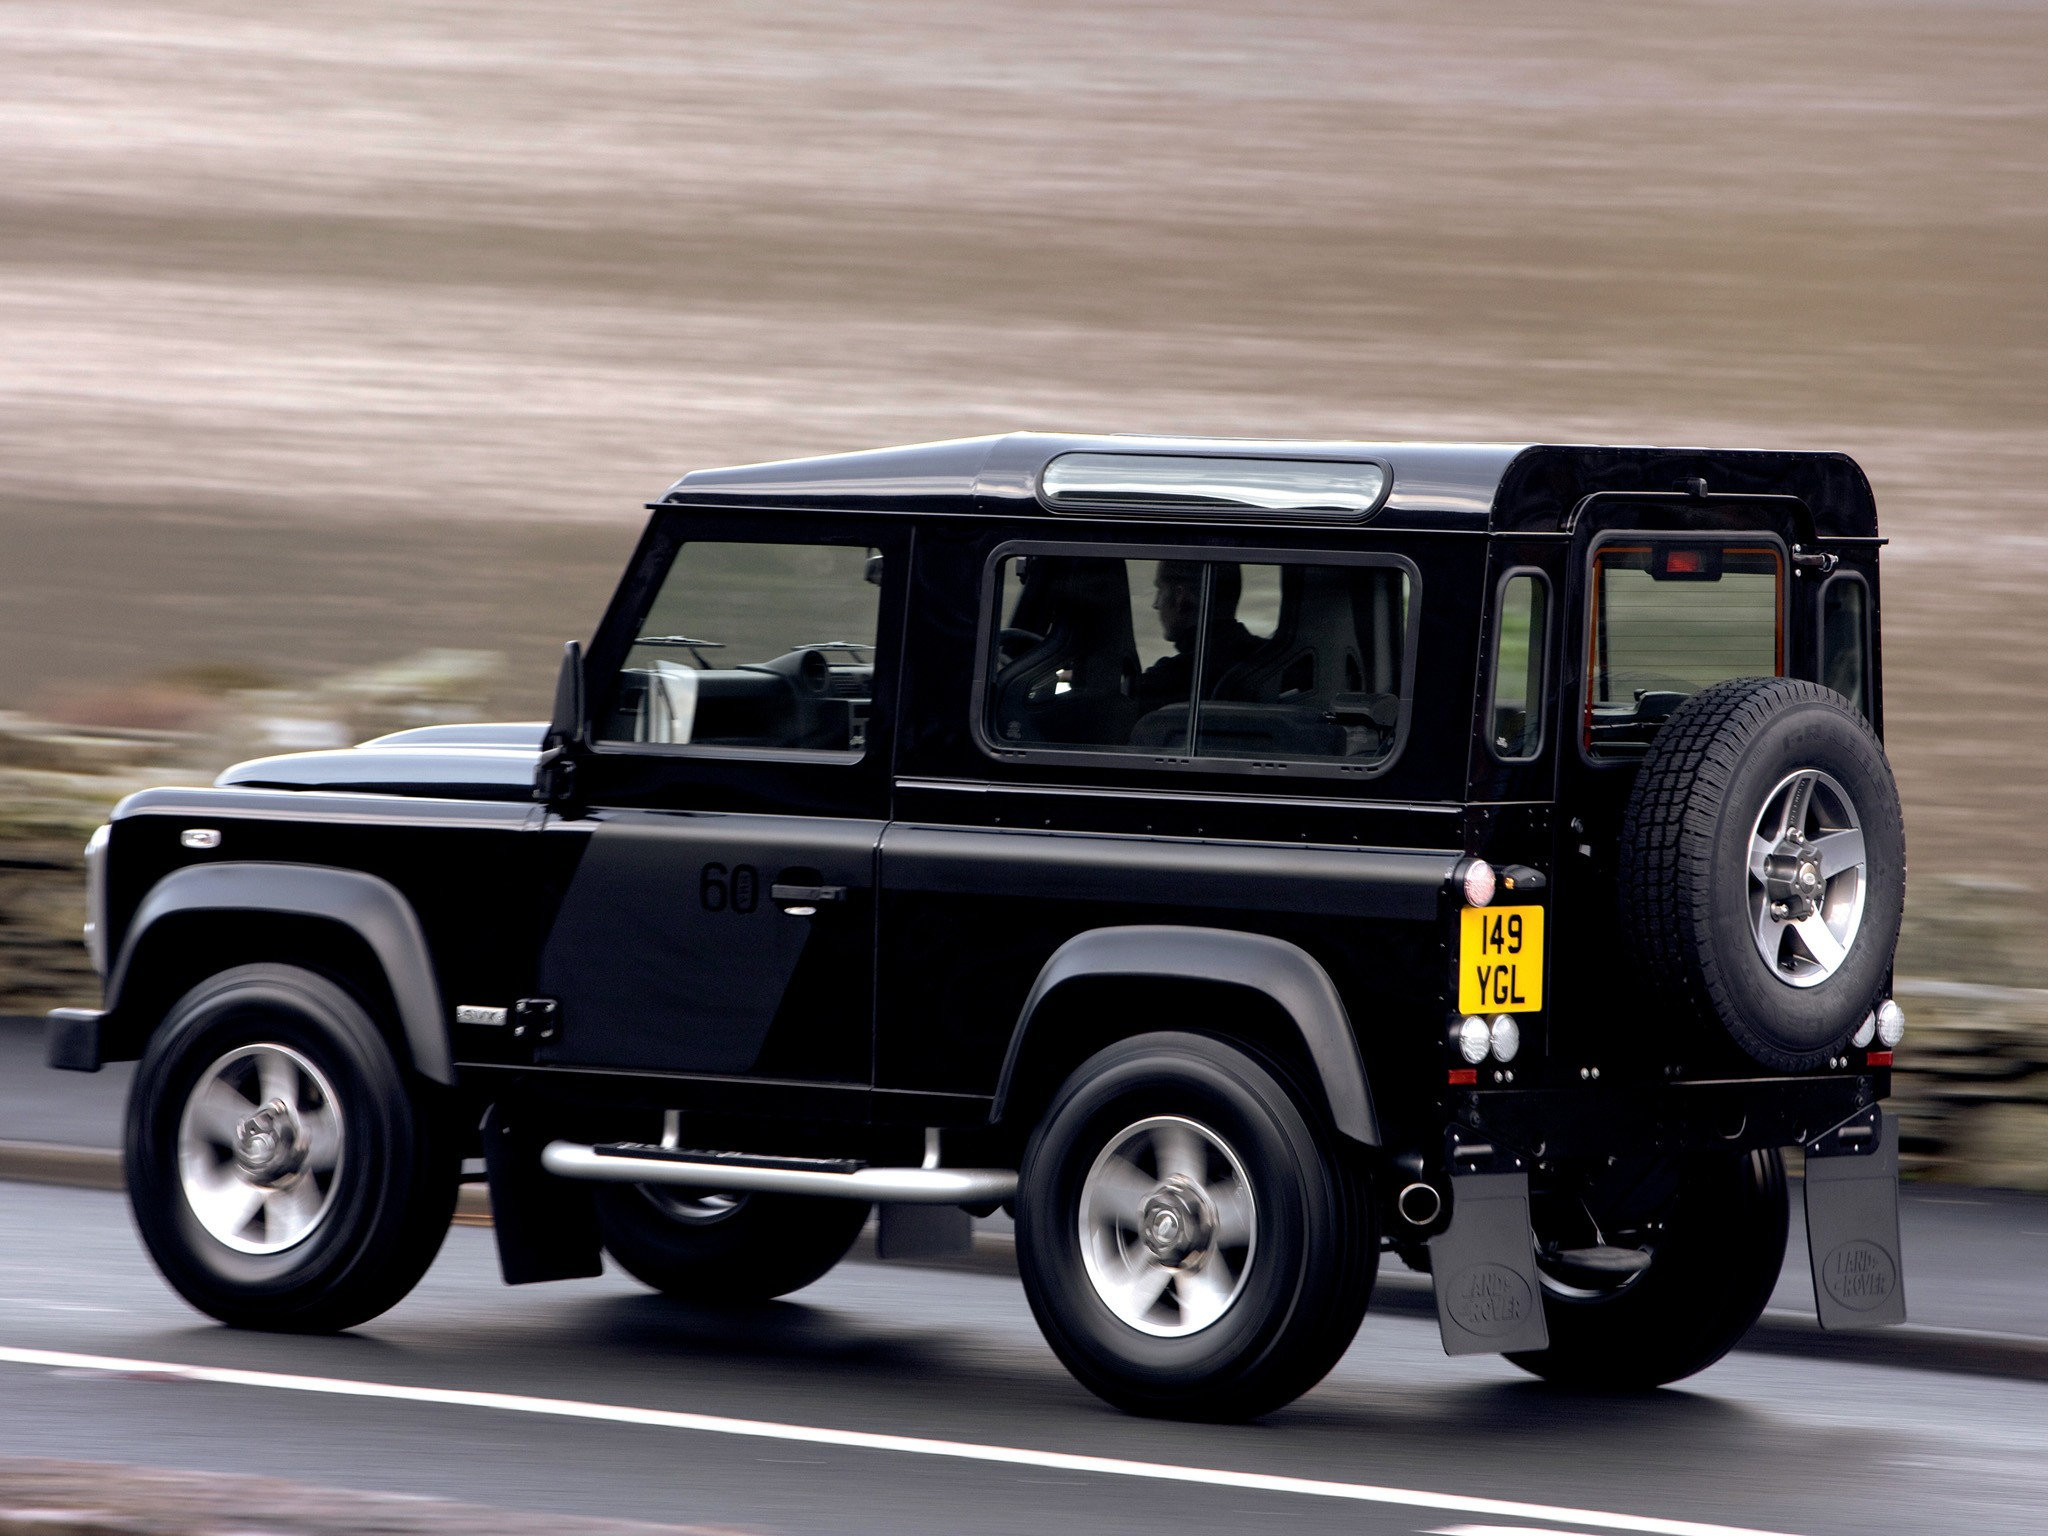 2019 land rover defender svx considered jaguar svx models. Black Bedroom Furniture Sets. Home Design Ideas